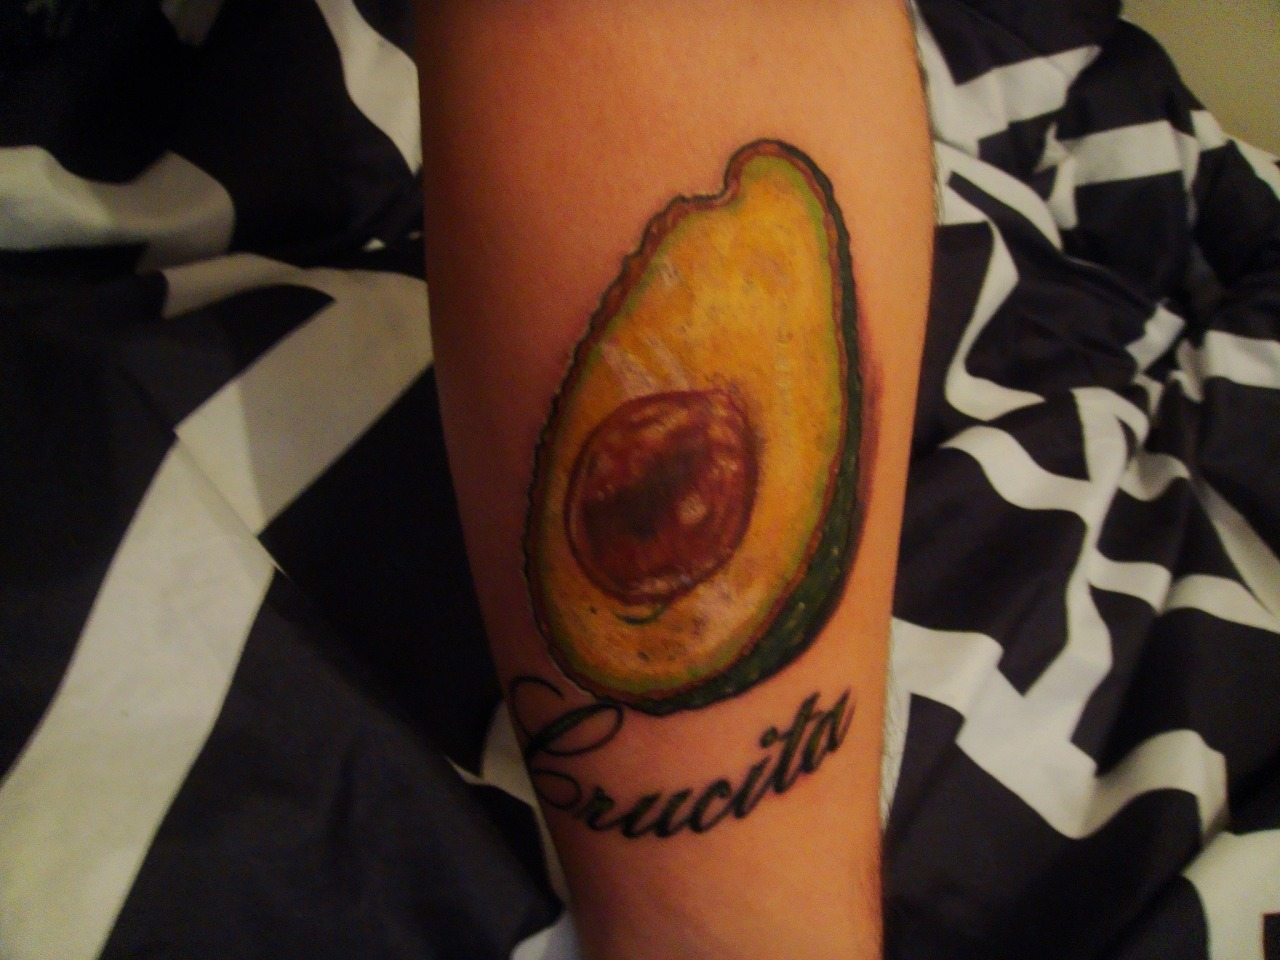 My newest tattoo. I wanted something of food since I am a cook and finishing up culinary school in the fall. I thought of an avocado and my grandmother. I have got more close to my grandmother and realized I have a lot of her side of genes in me. She has been through so much and is still alive and well. To me she makes the best Puerto Rican food in the city of Chicago. And she always cuts up an avocado and puts in her rice.